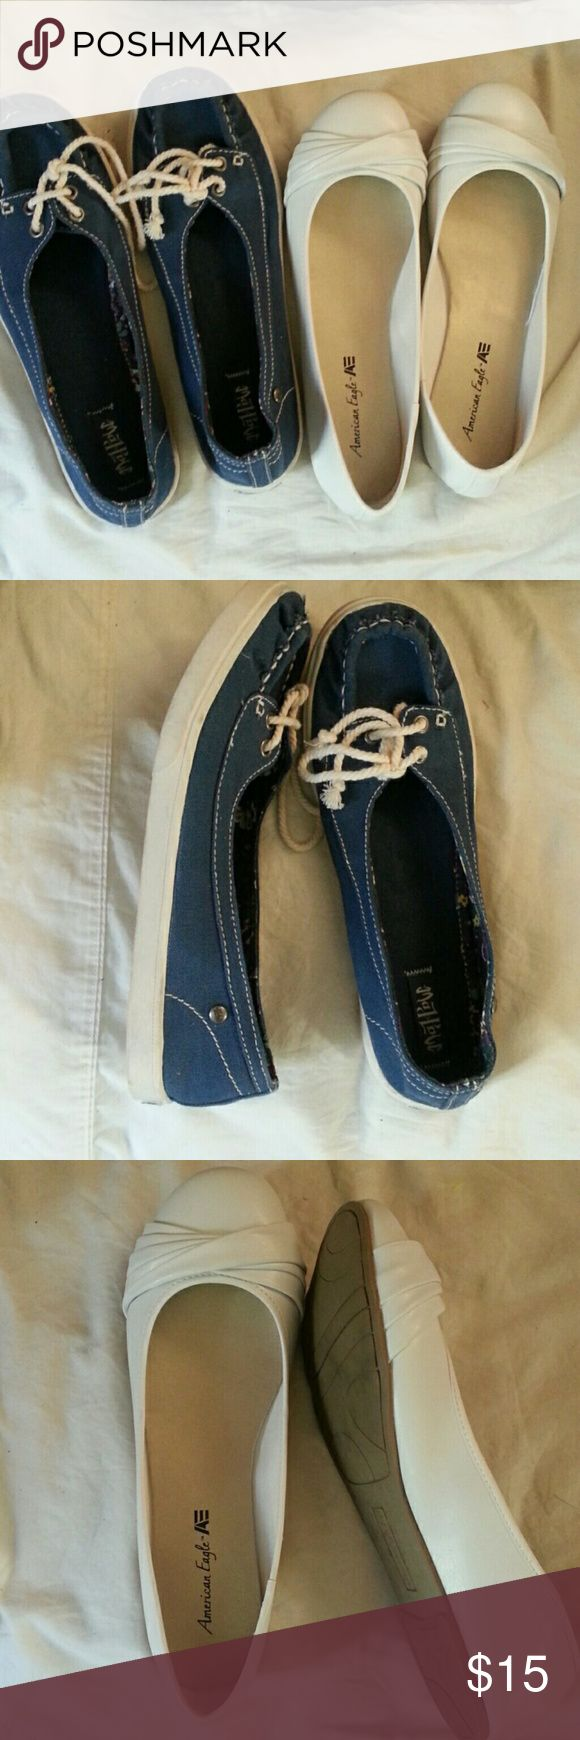 Ladies  shoes#BUNDLE Flats and loafers  both  size  9 Shoes Flats & Loafers